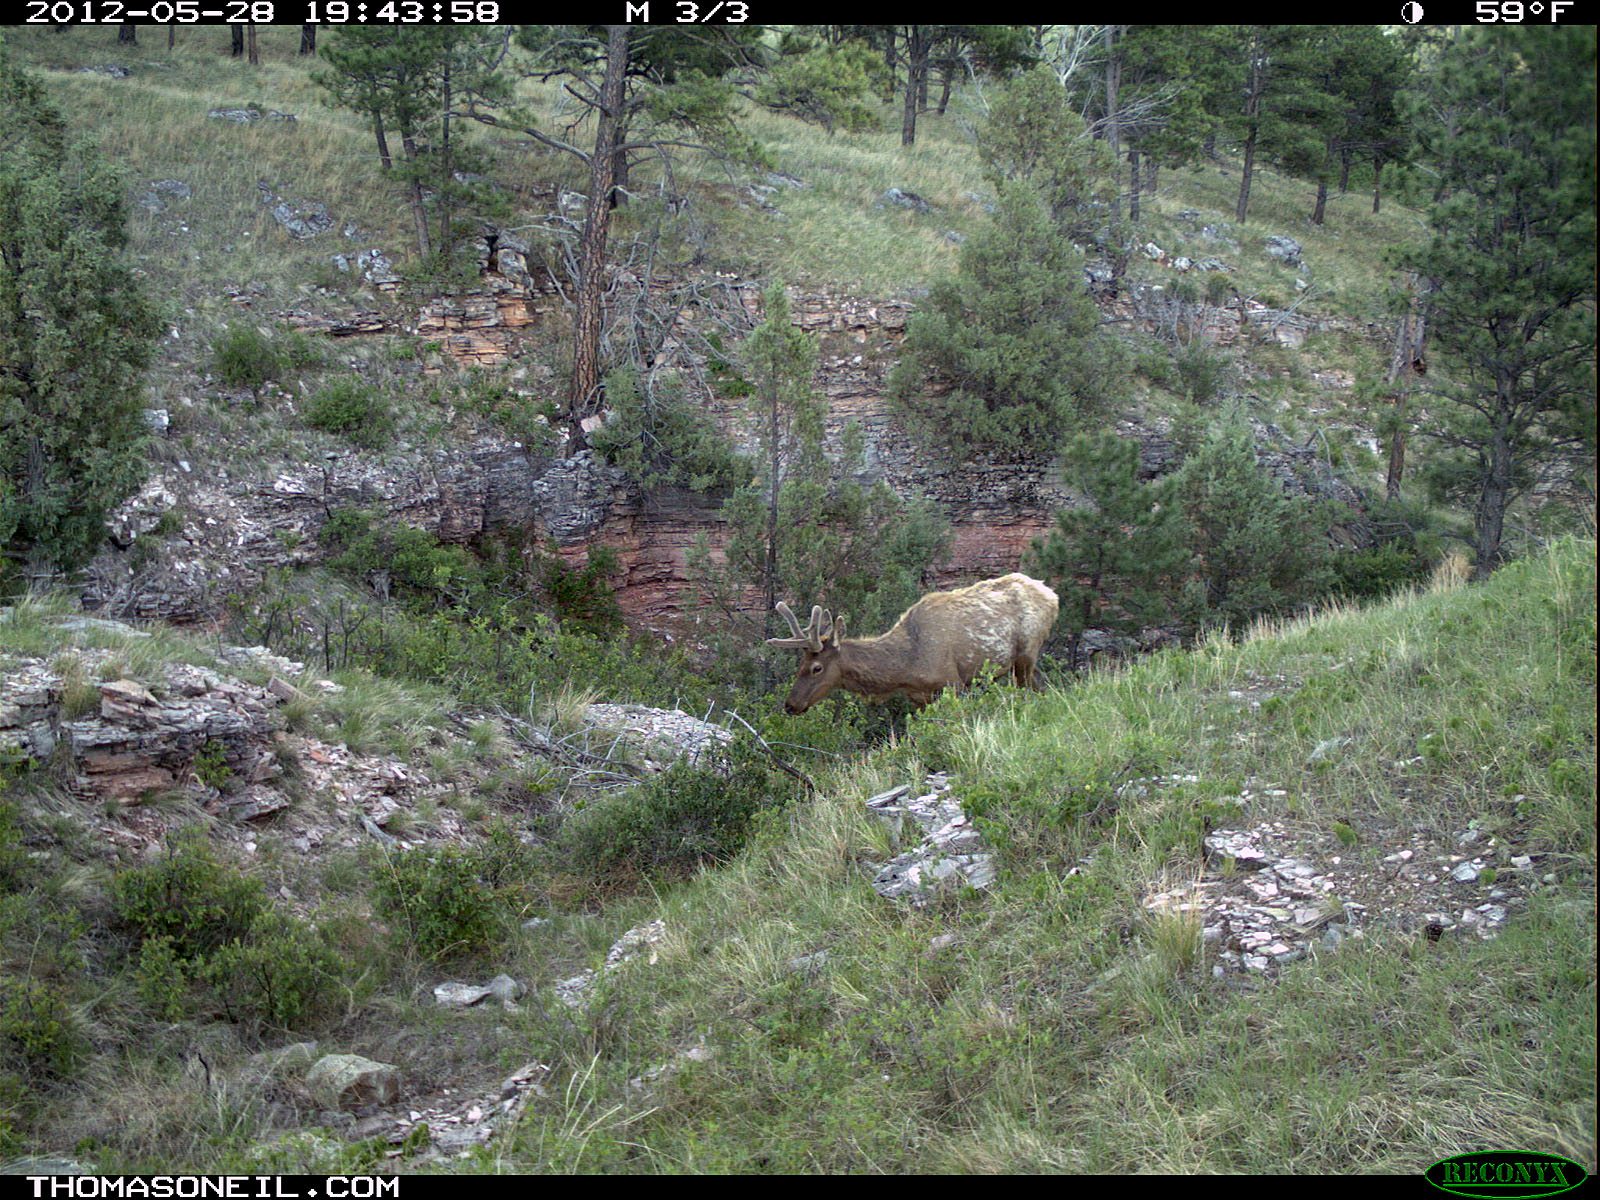 Trailcam picture of elk, Wind Cave National Park, May 28.